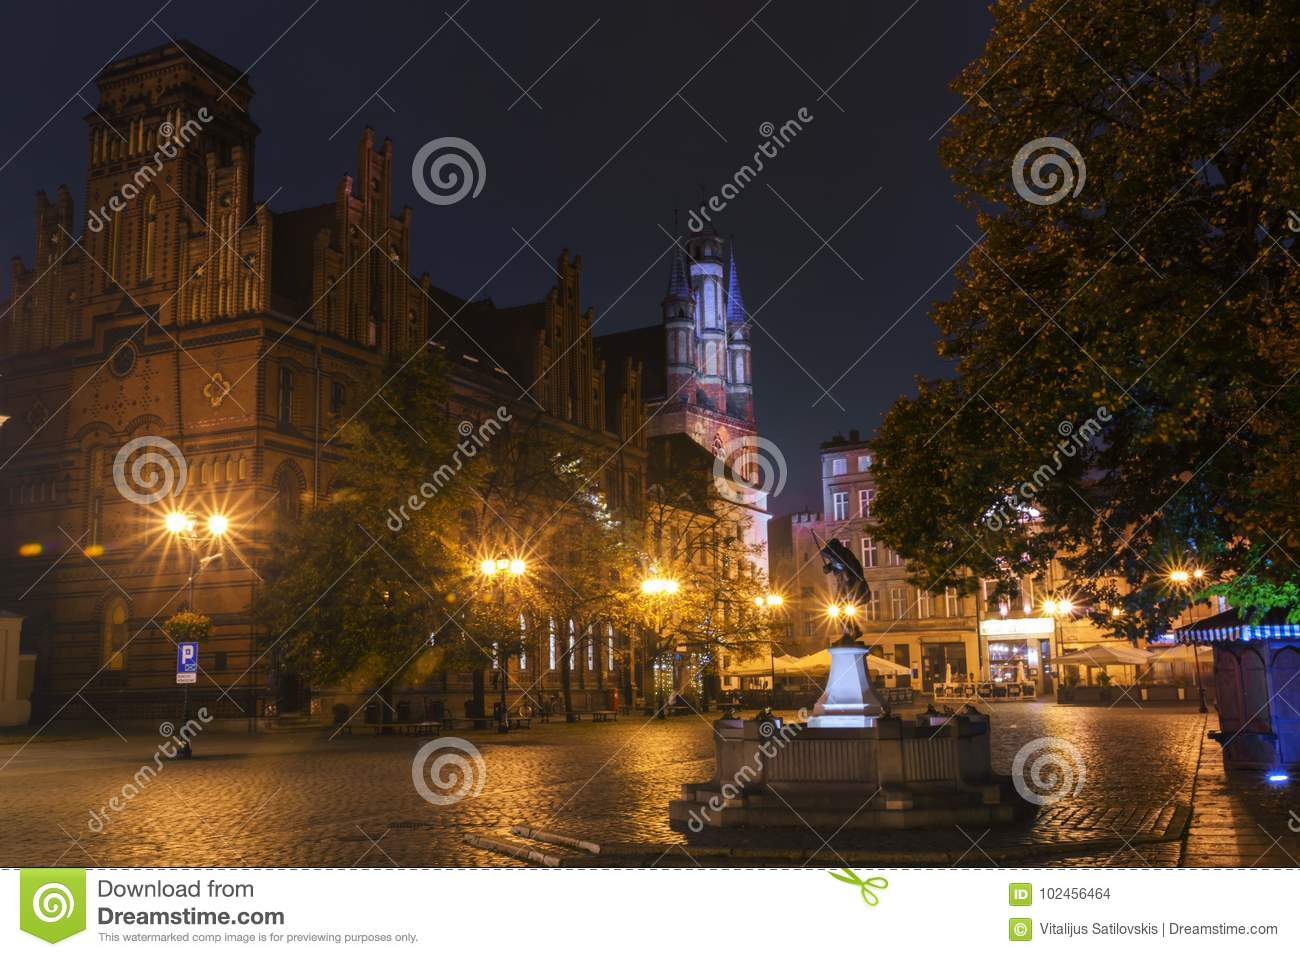 2017. 10. 20 Torun Poland, night view of Torun City street, Old town skyline with the town hall, one of largest hall in eastern Eu